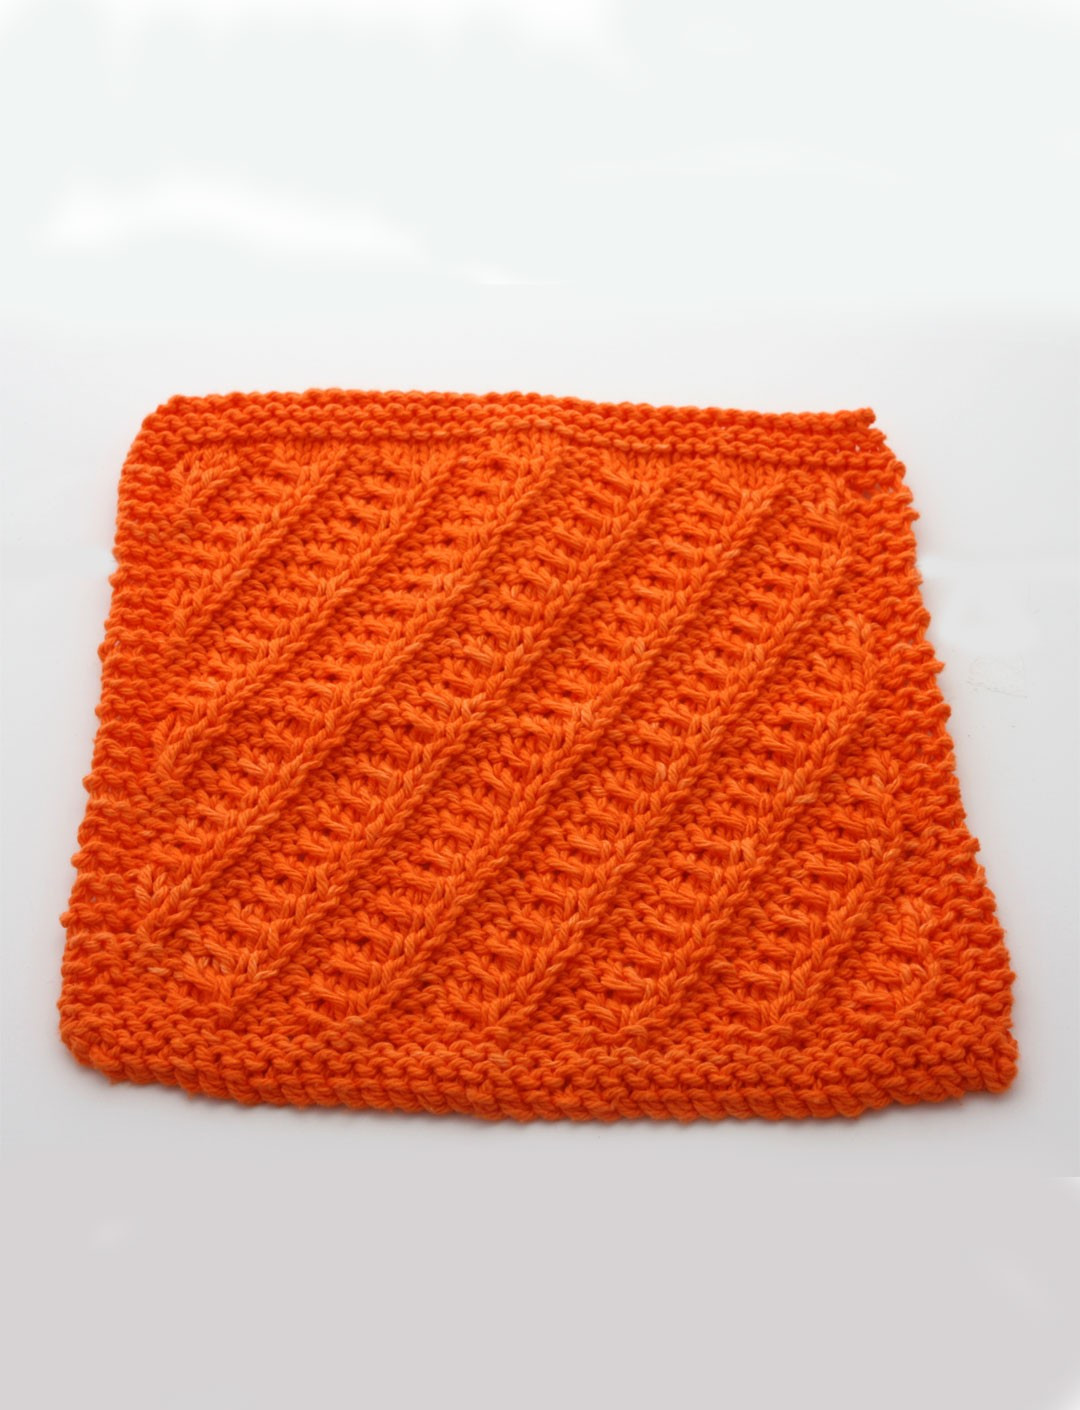 34 New Crochet Dishcloth Patterns For Free Patterns Hub